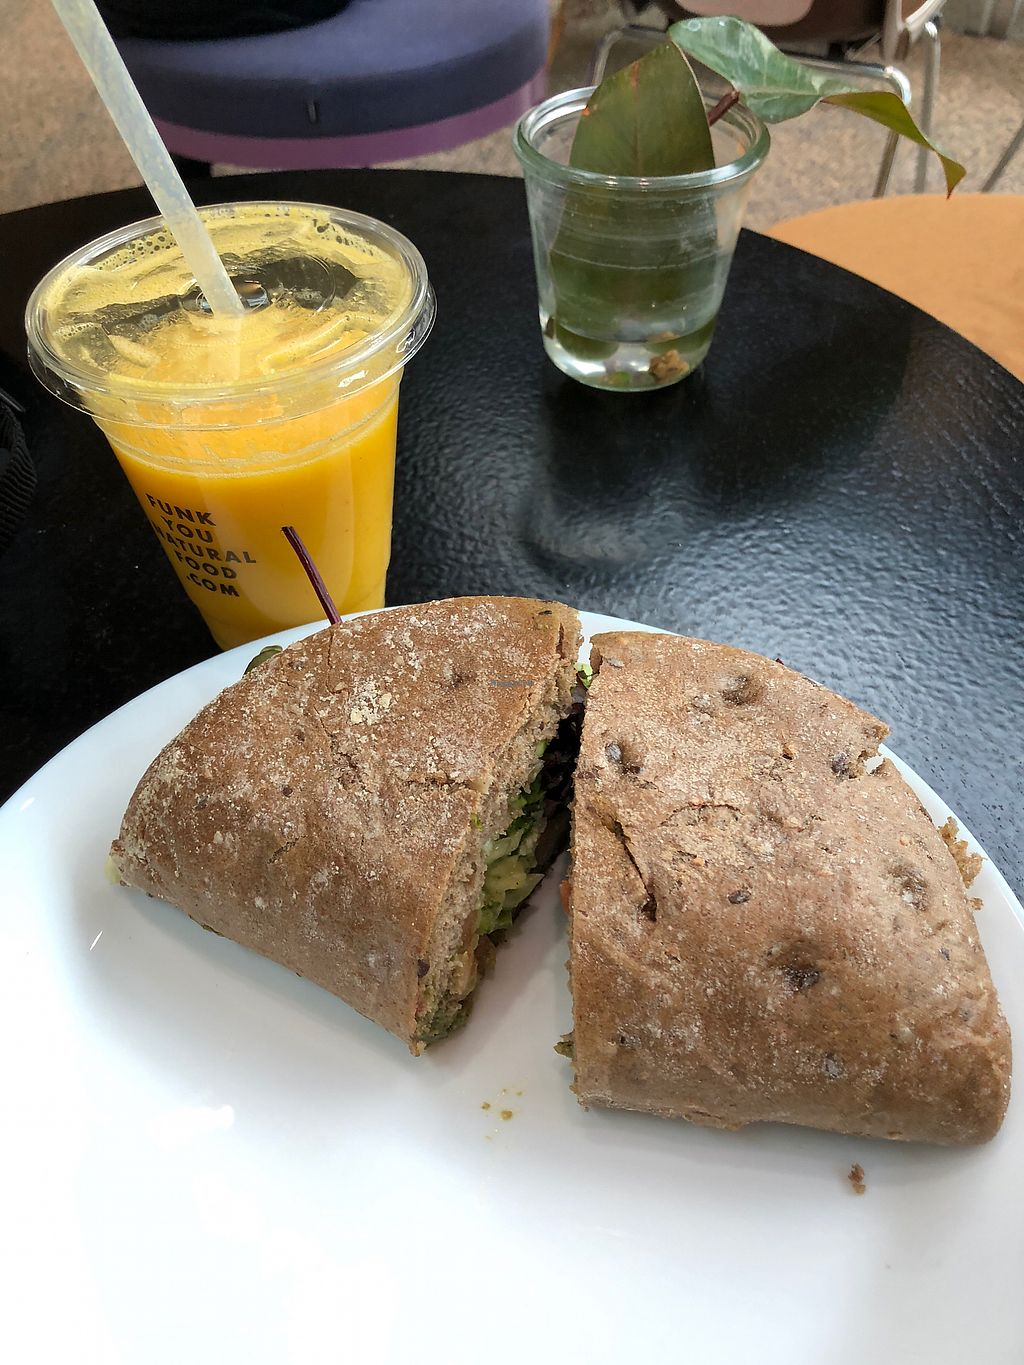 """Photo of Funk You Natural Food  by <a href=""""/members/profile/Marta_CG"""">Marta_CG</a> <br/>Berlin beach juice and sensation sandwich  <br/> February 22, 2018  - <a href='/contact/abuse/image/30960/362381'>Report</a>"""